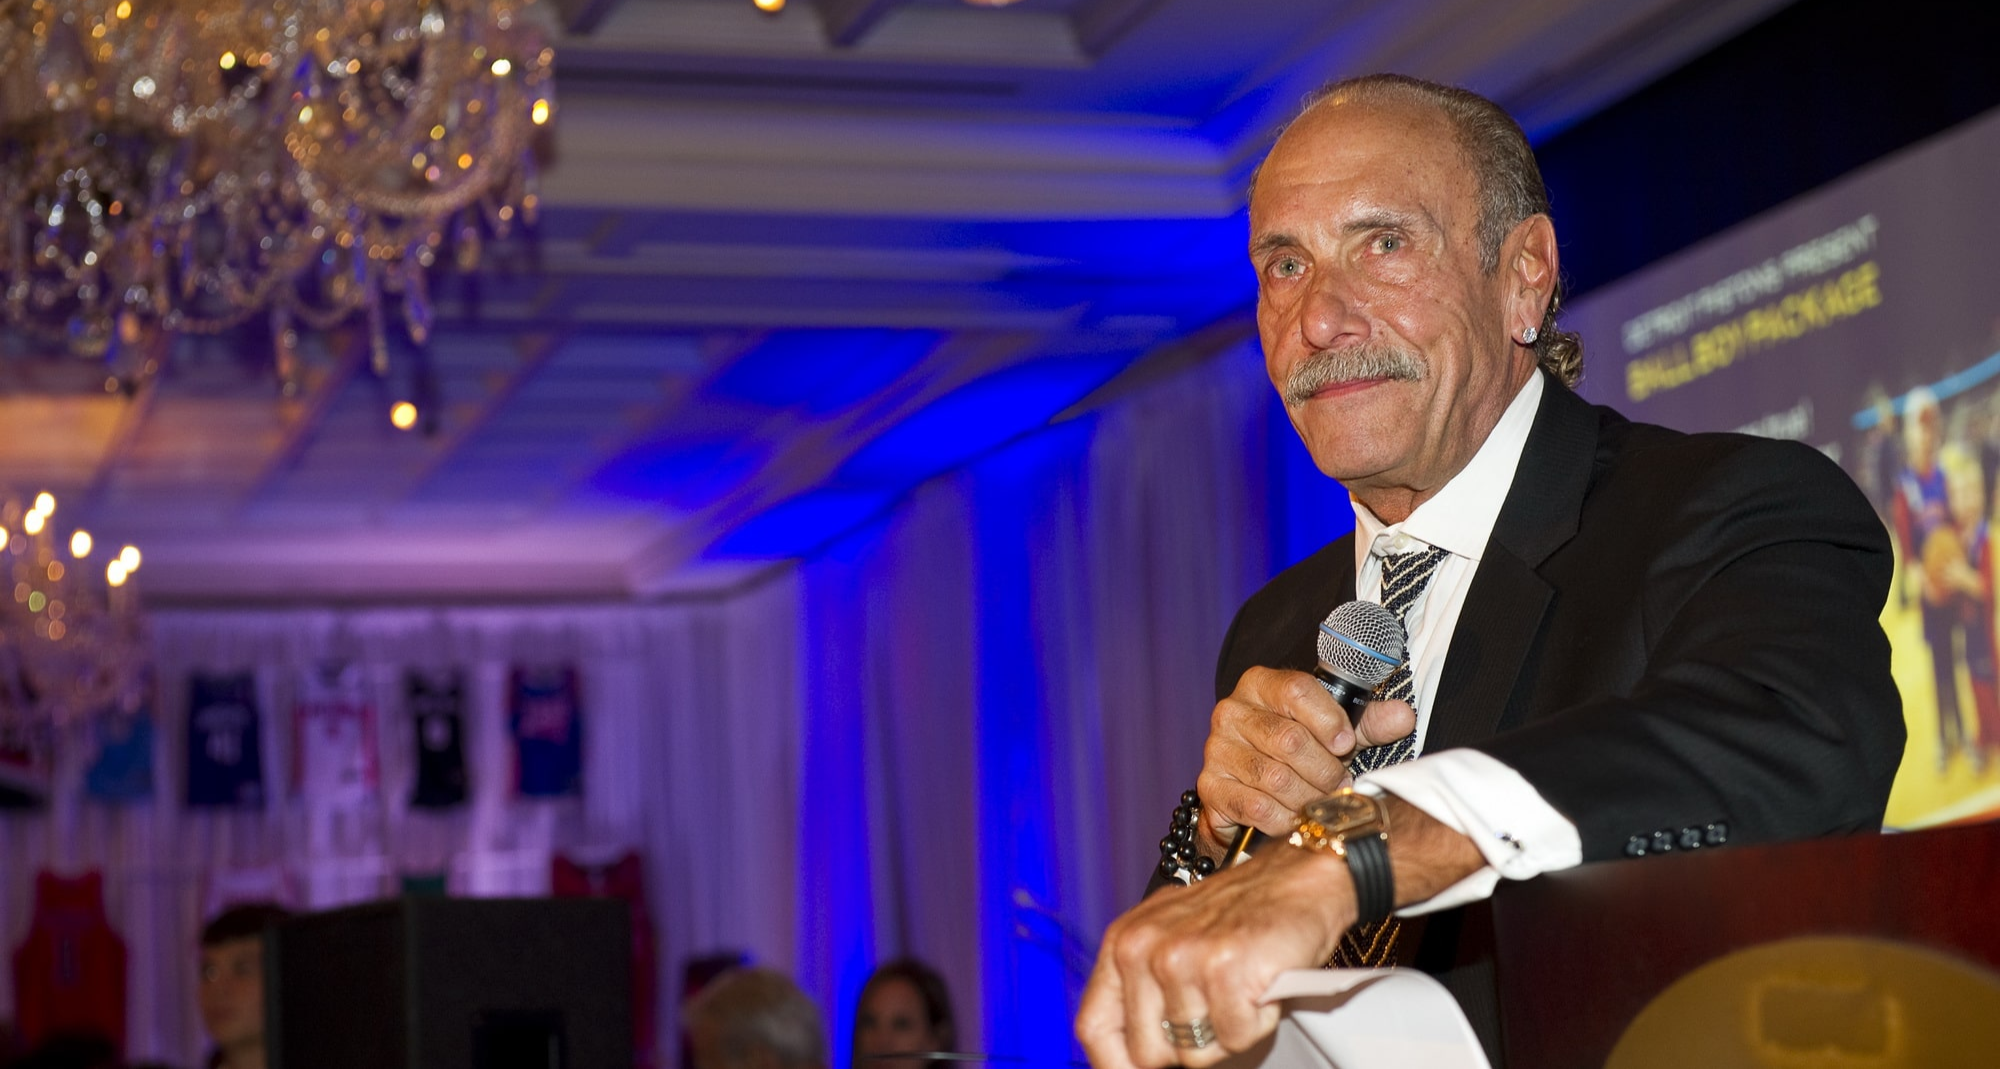 Les Gold is attending an event. He is holding a mic in his right hand. He is looking away from the camera with a subtle smile.